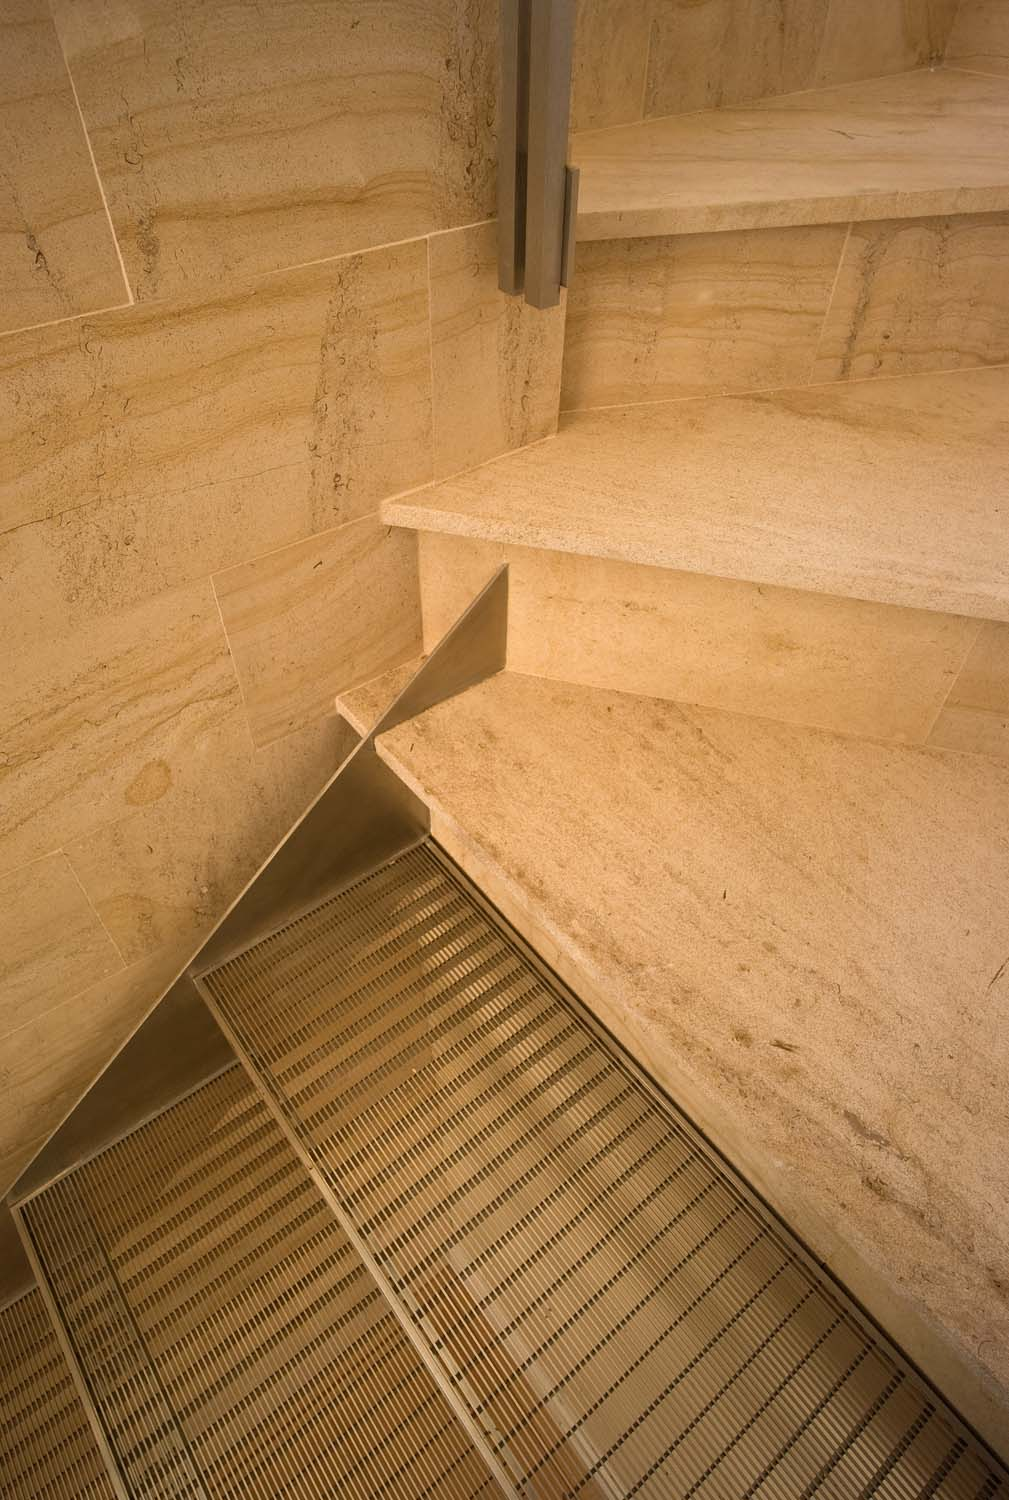 The transparency and lightness of the stainless steel stair set against the limestone winder